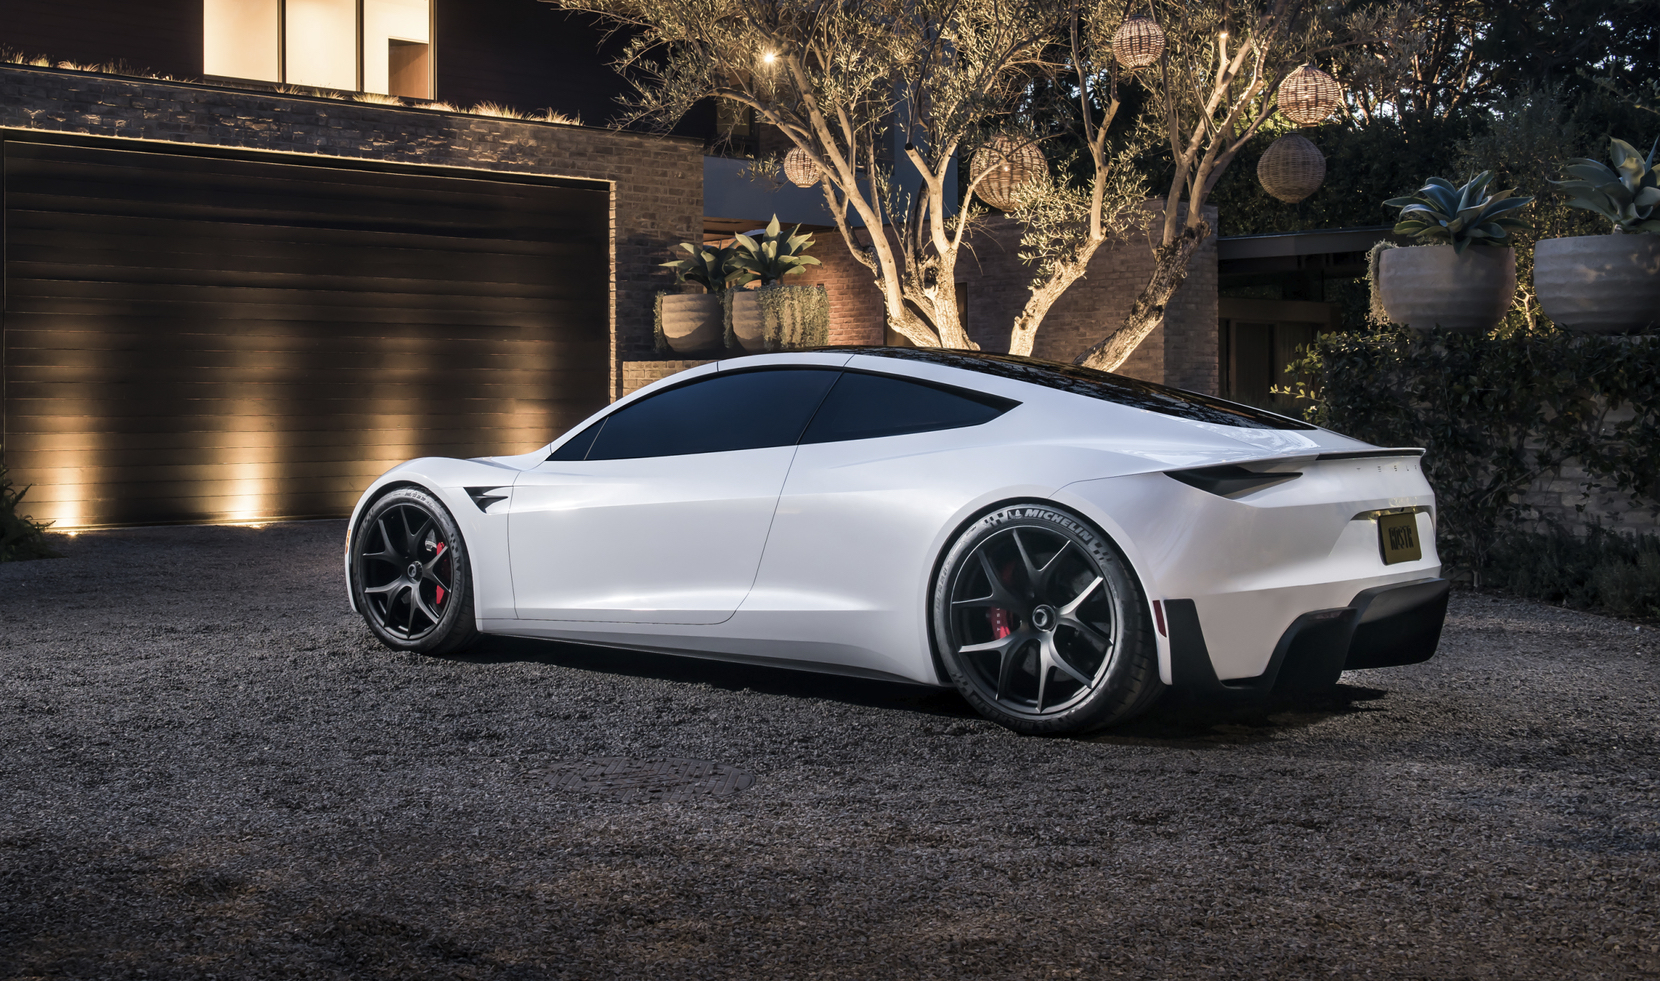 Tesla Powerwall 2 >> Tesla's Referral Program is back with Founders Series Model Y and Roadster signed by Elon Musk